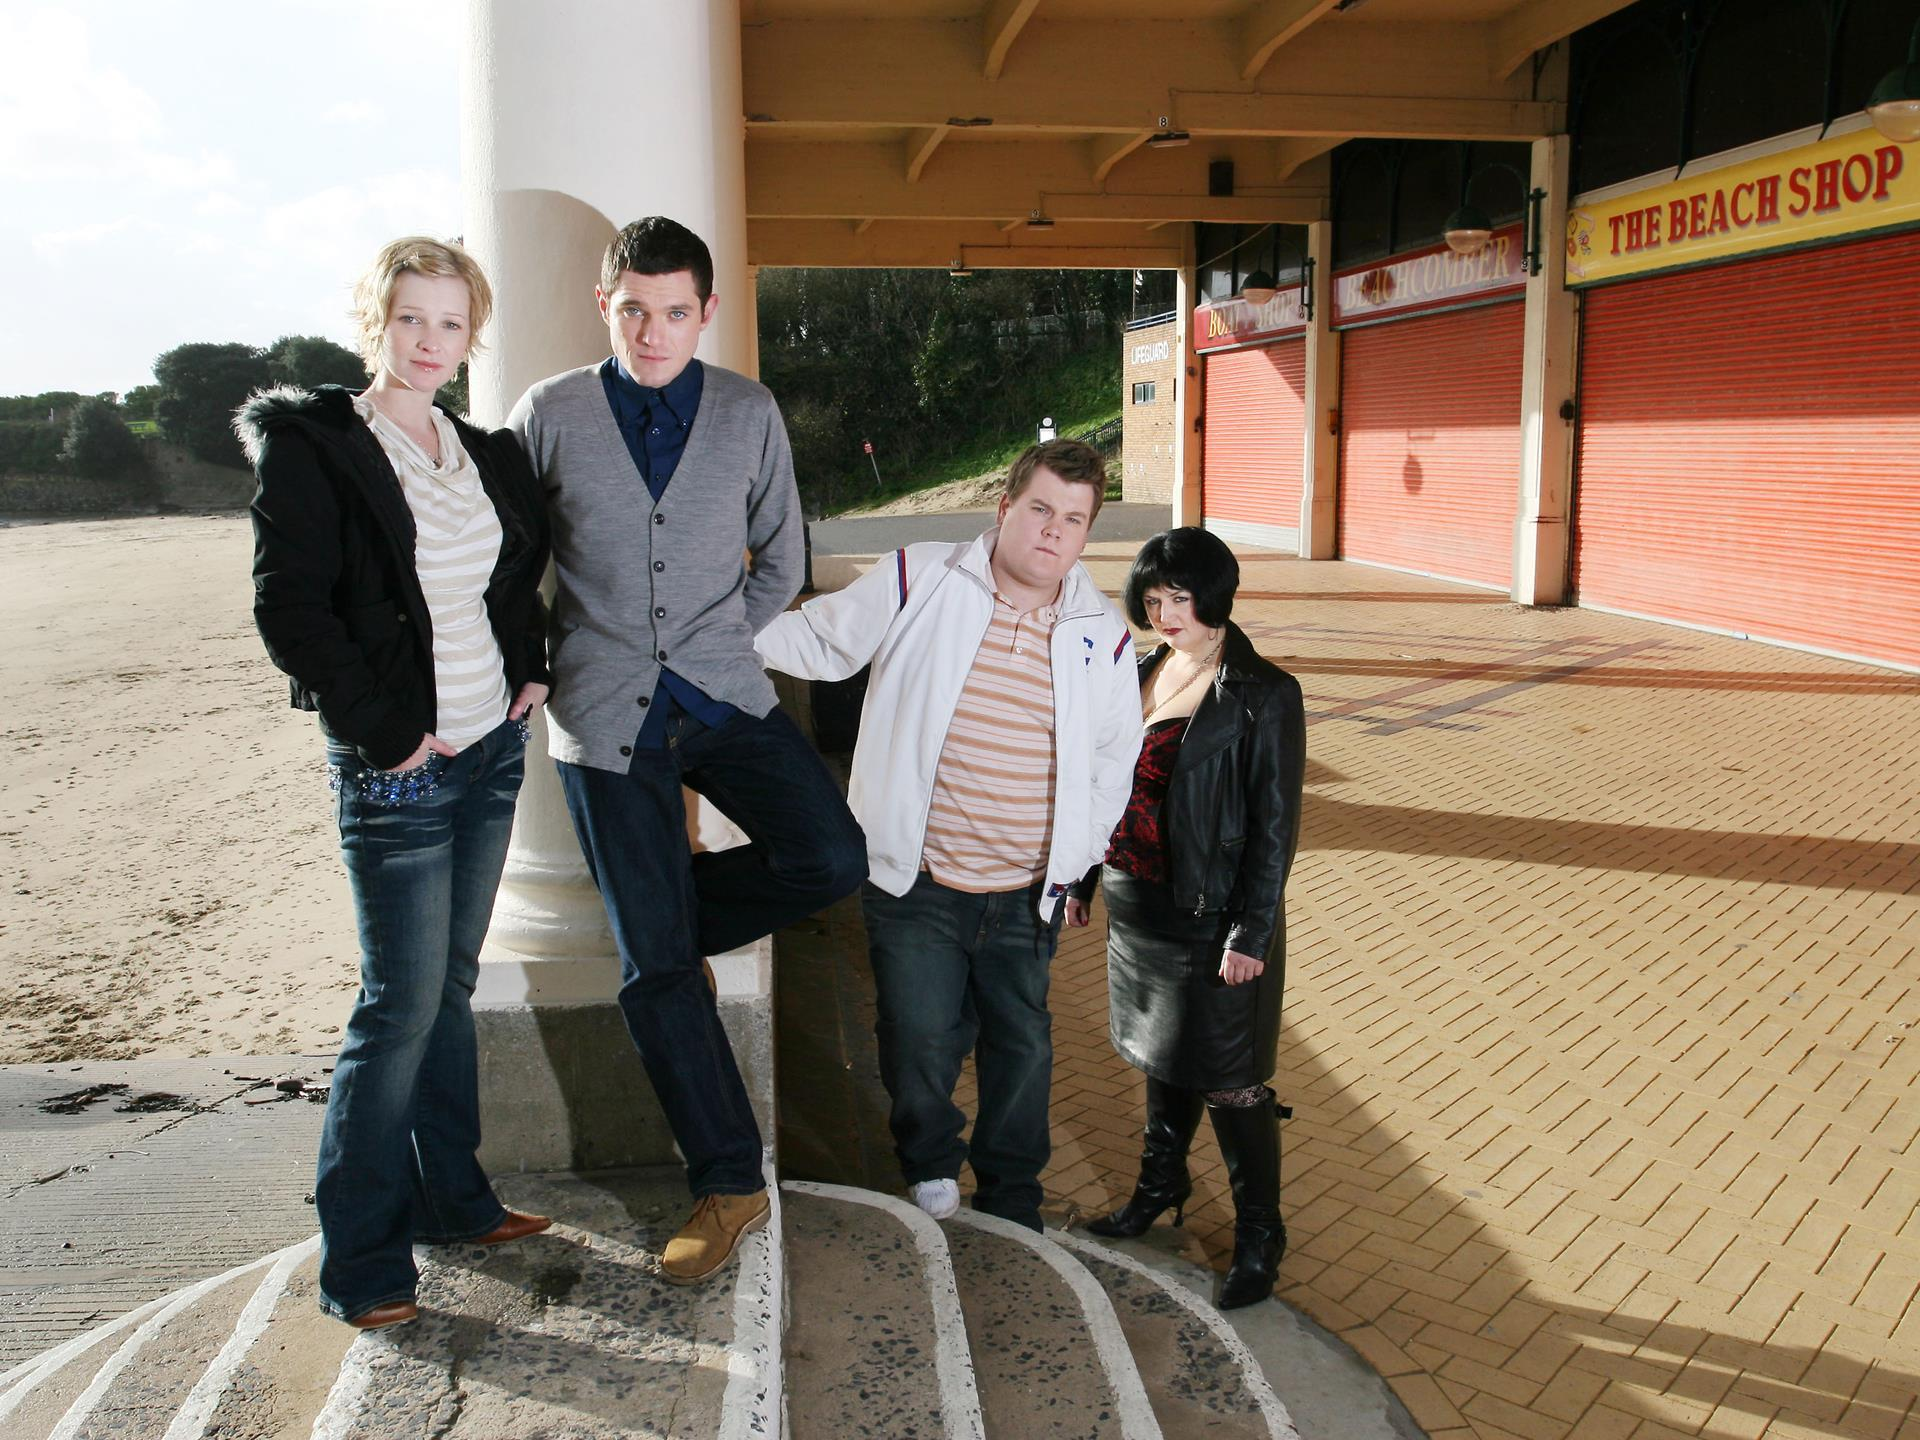 Gavin and Stacey Tour [OFFICIAL TOUR]